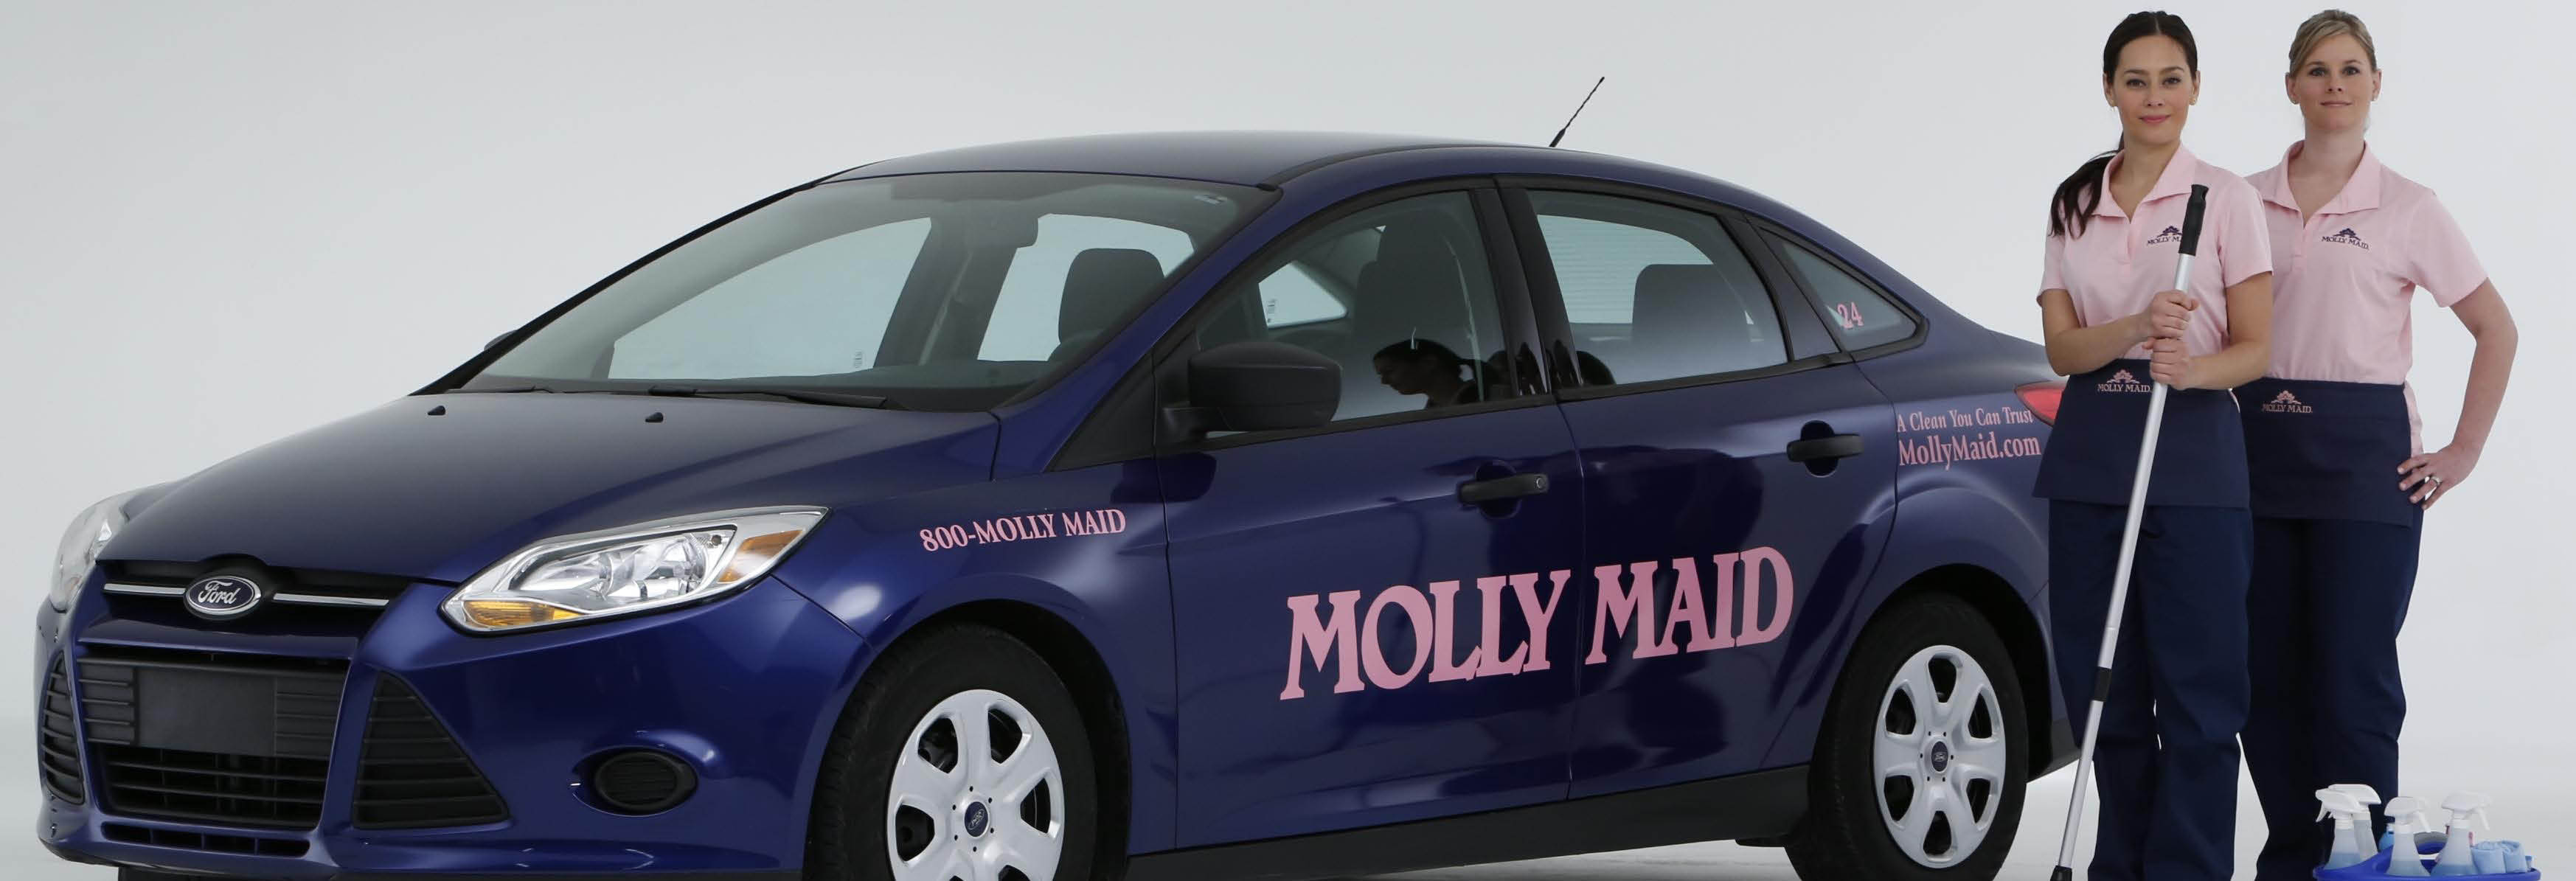 molly maid professional cleaning